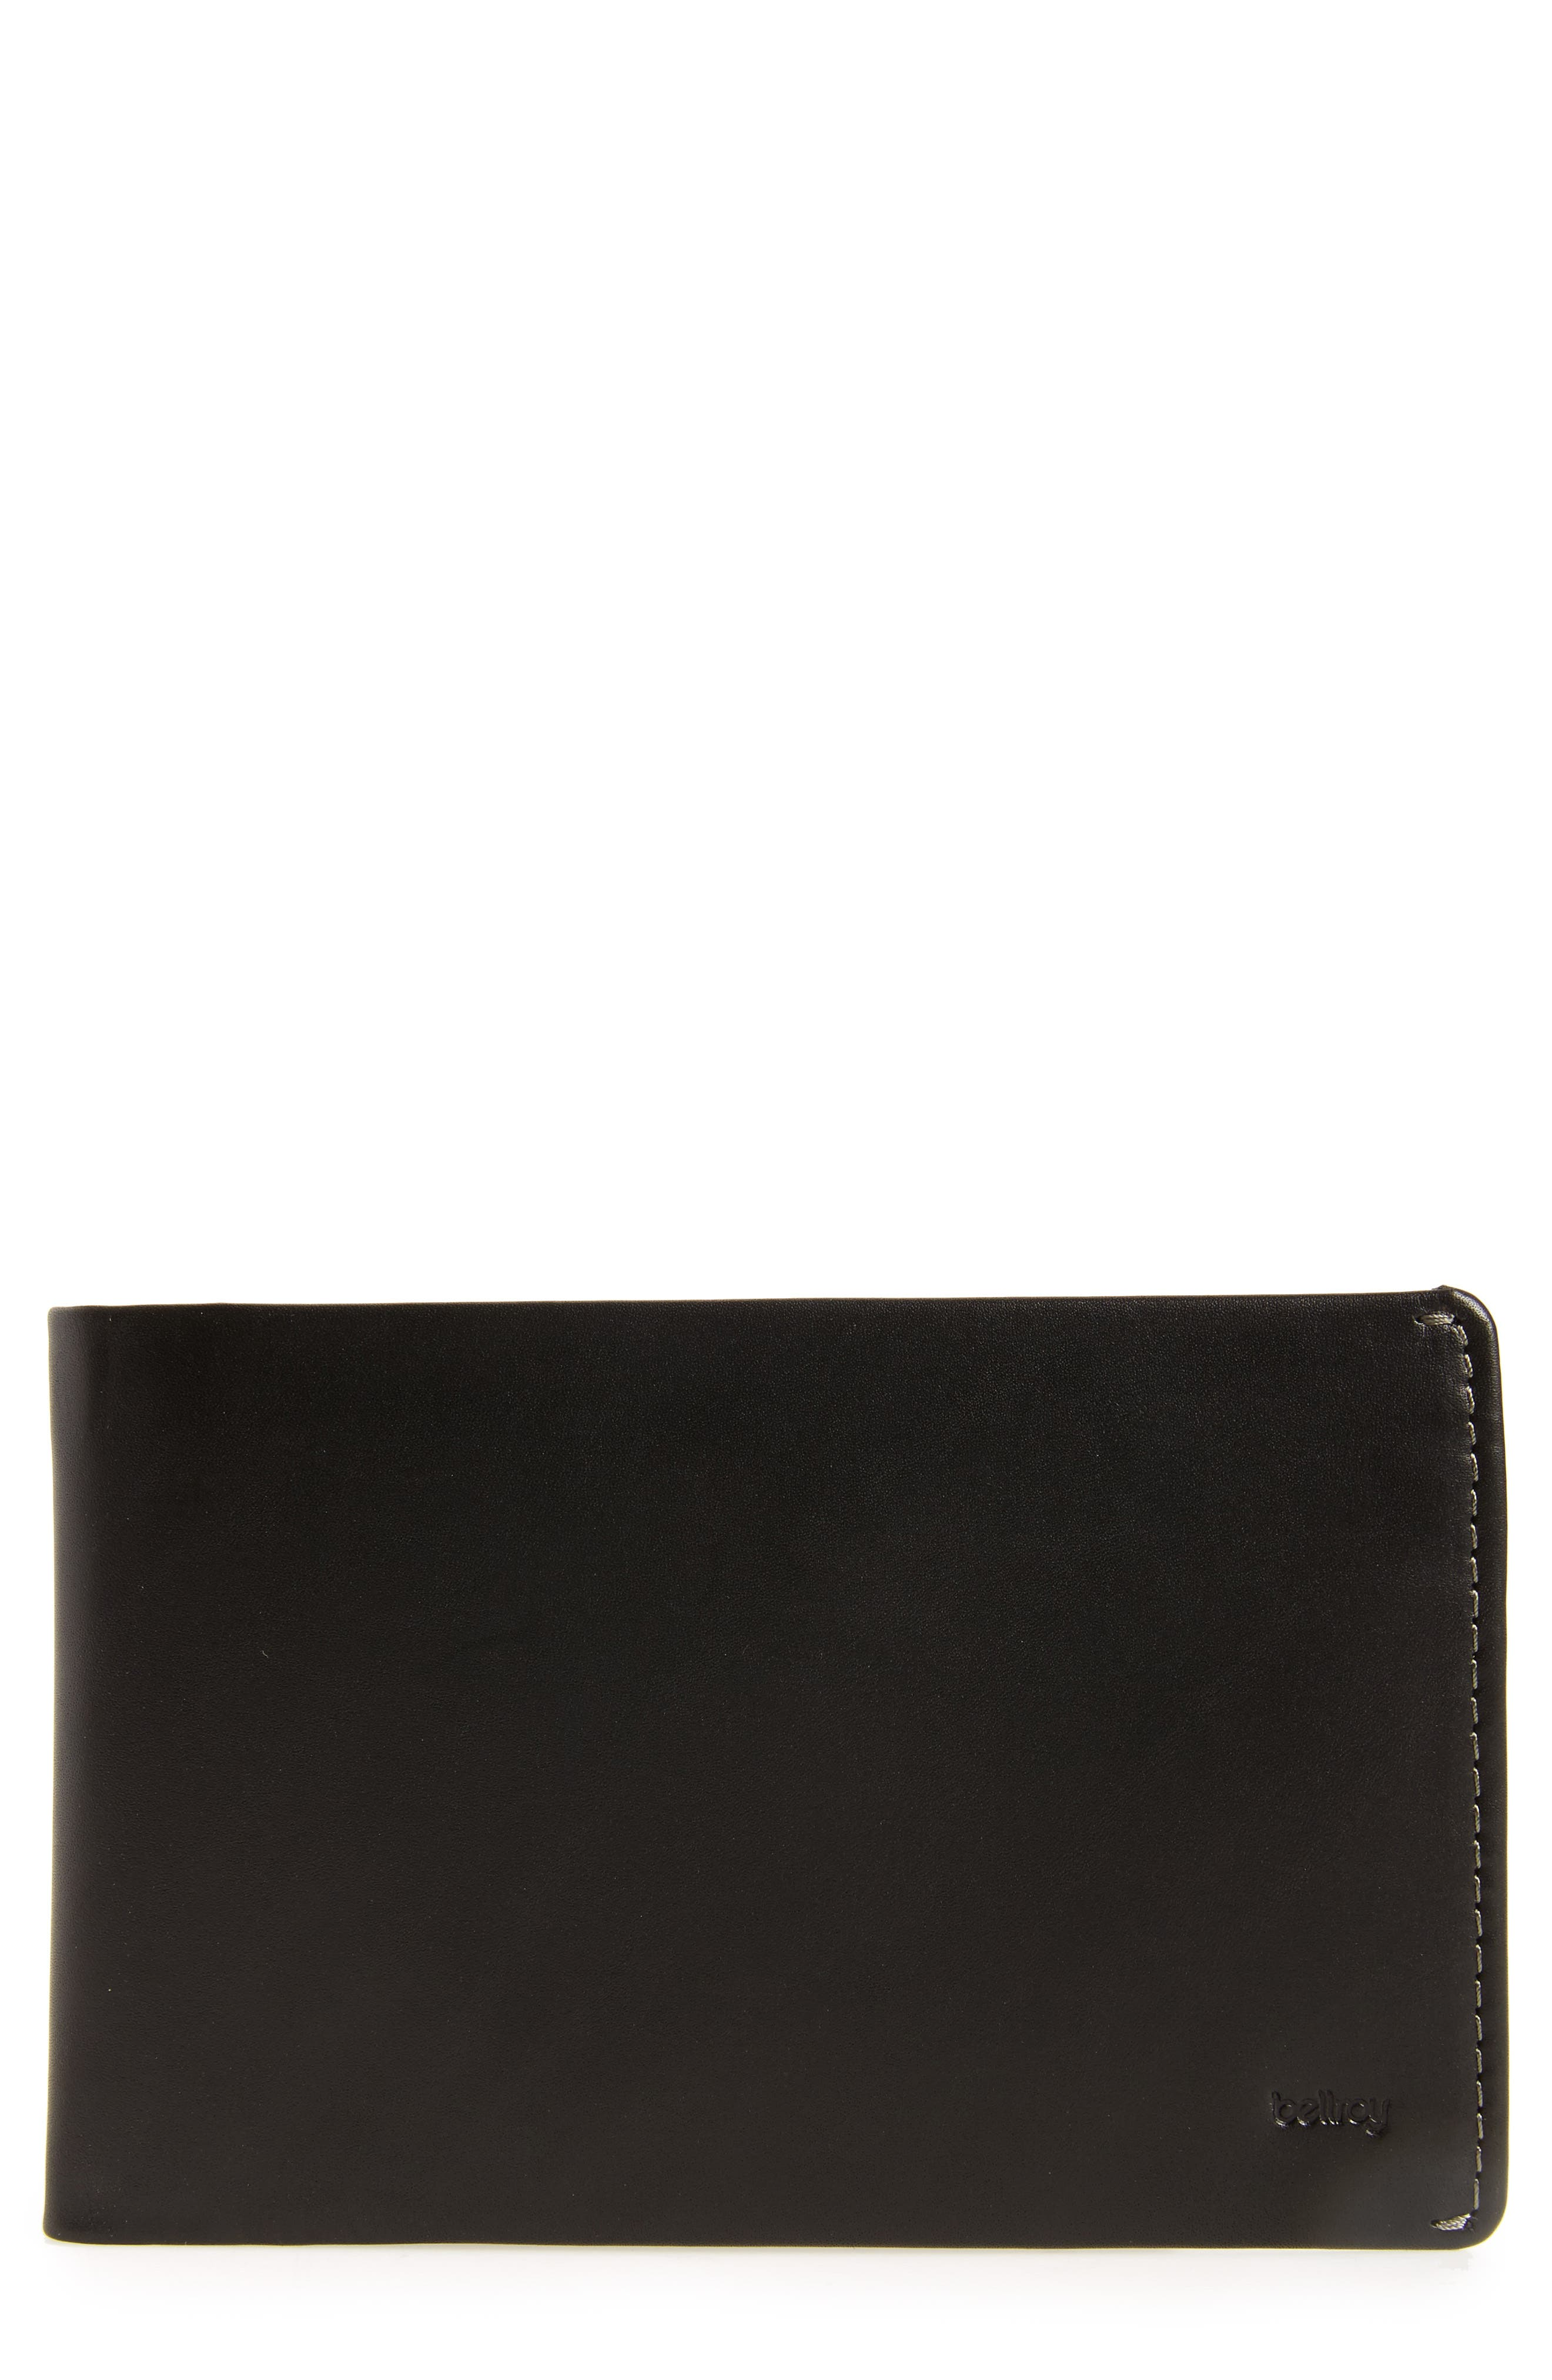 RFID Travel Wallet,                         Main,                         color, 001